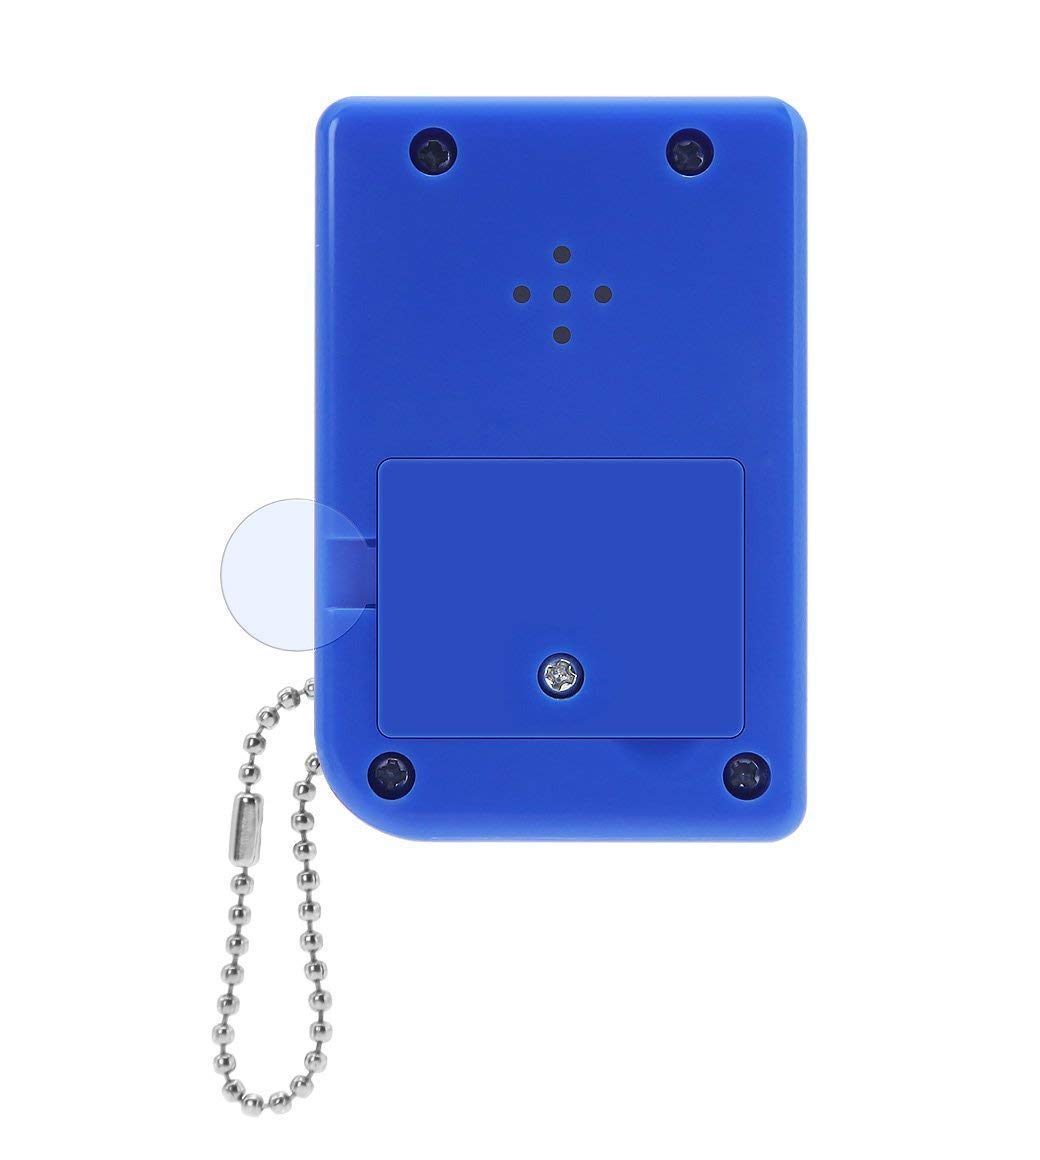 Darkblue KincoBa Brick Game Keychain,with Hanging Chain,Mini Size,Bright Colors,Built-in 26 Brick Game Matches,Best Birthday Festival Gift for 4-12 Year Children